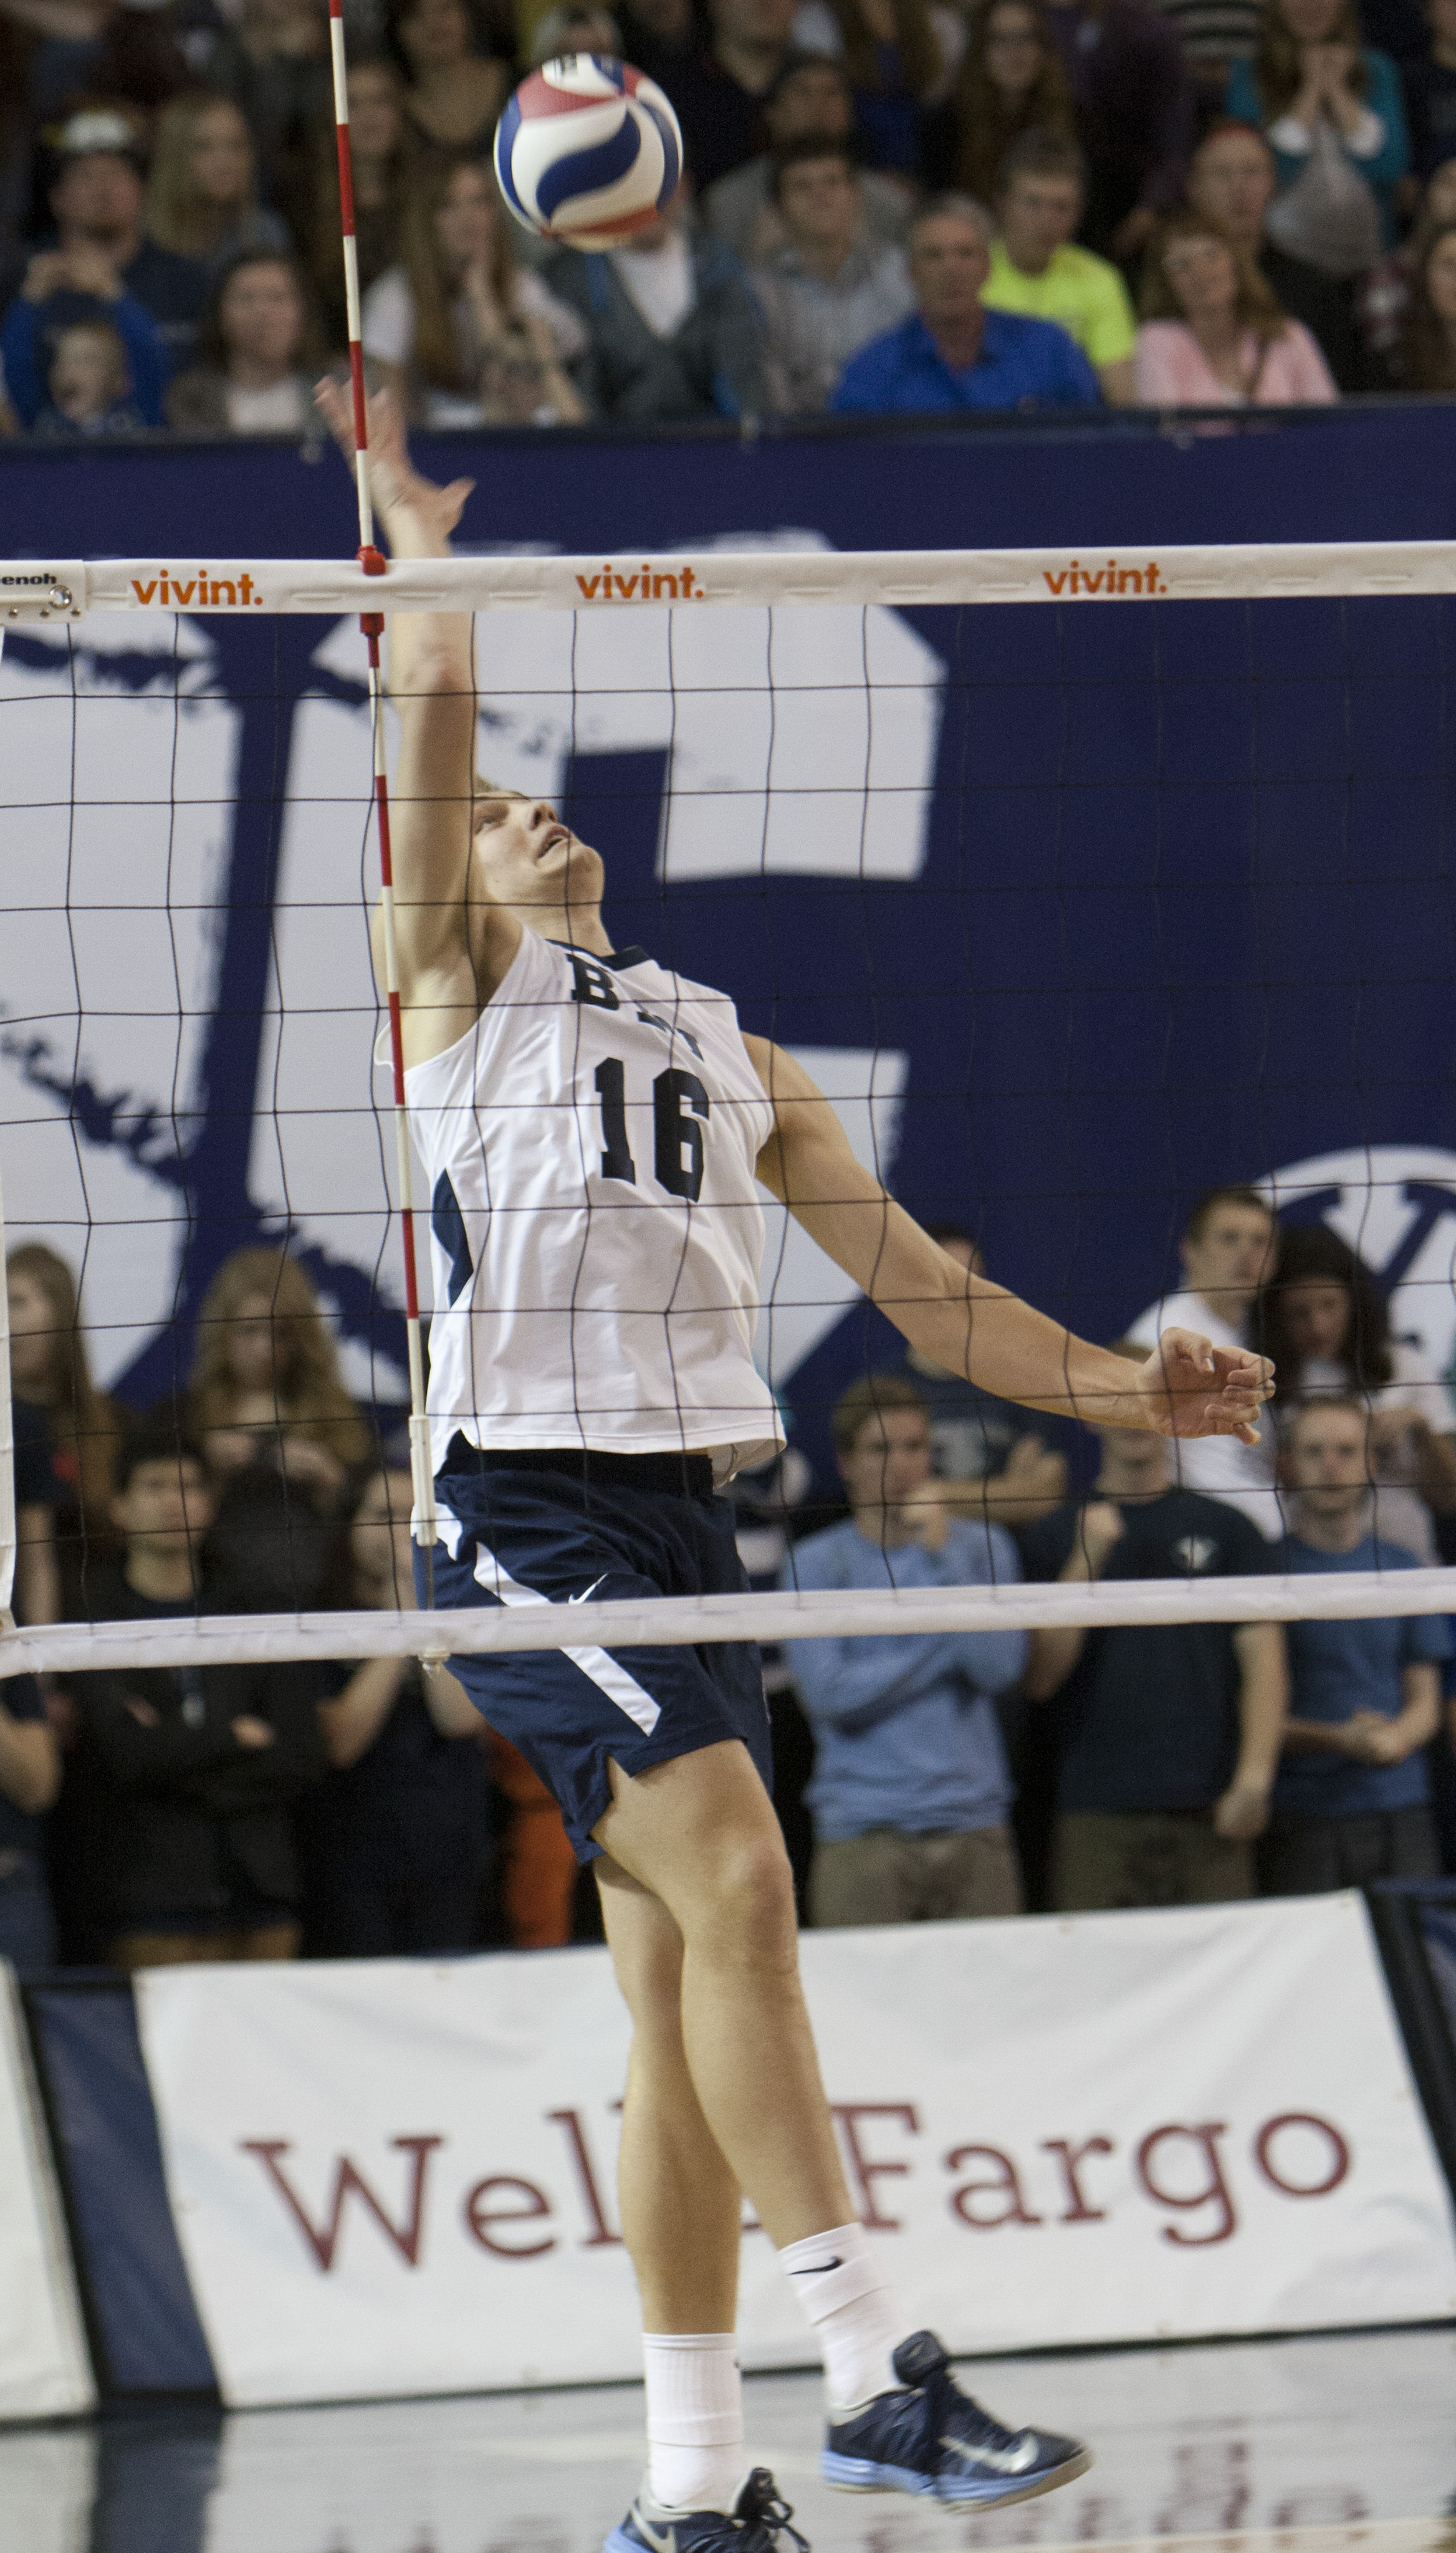 Tim Dobbert jumps to strike the ball over the net during the BYU vs. Pacific volleyball game earlier this season. Photo by Natalie Stoker